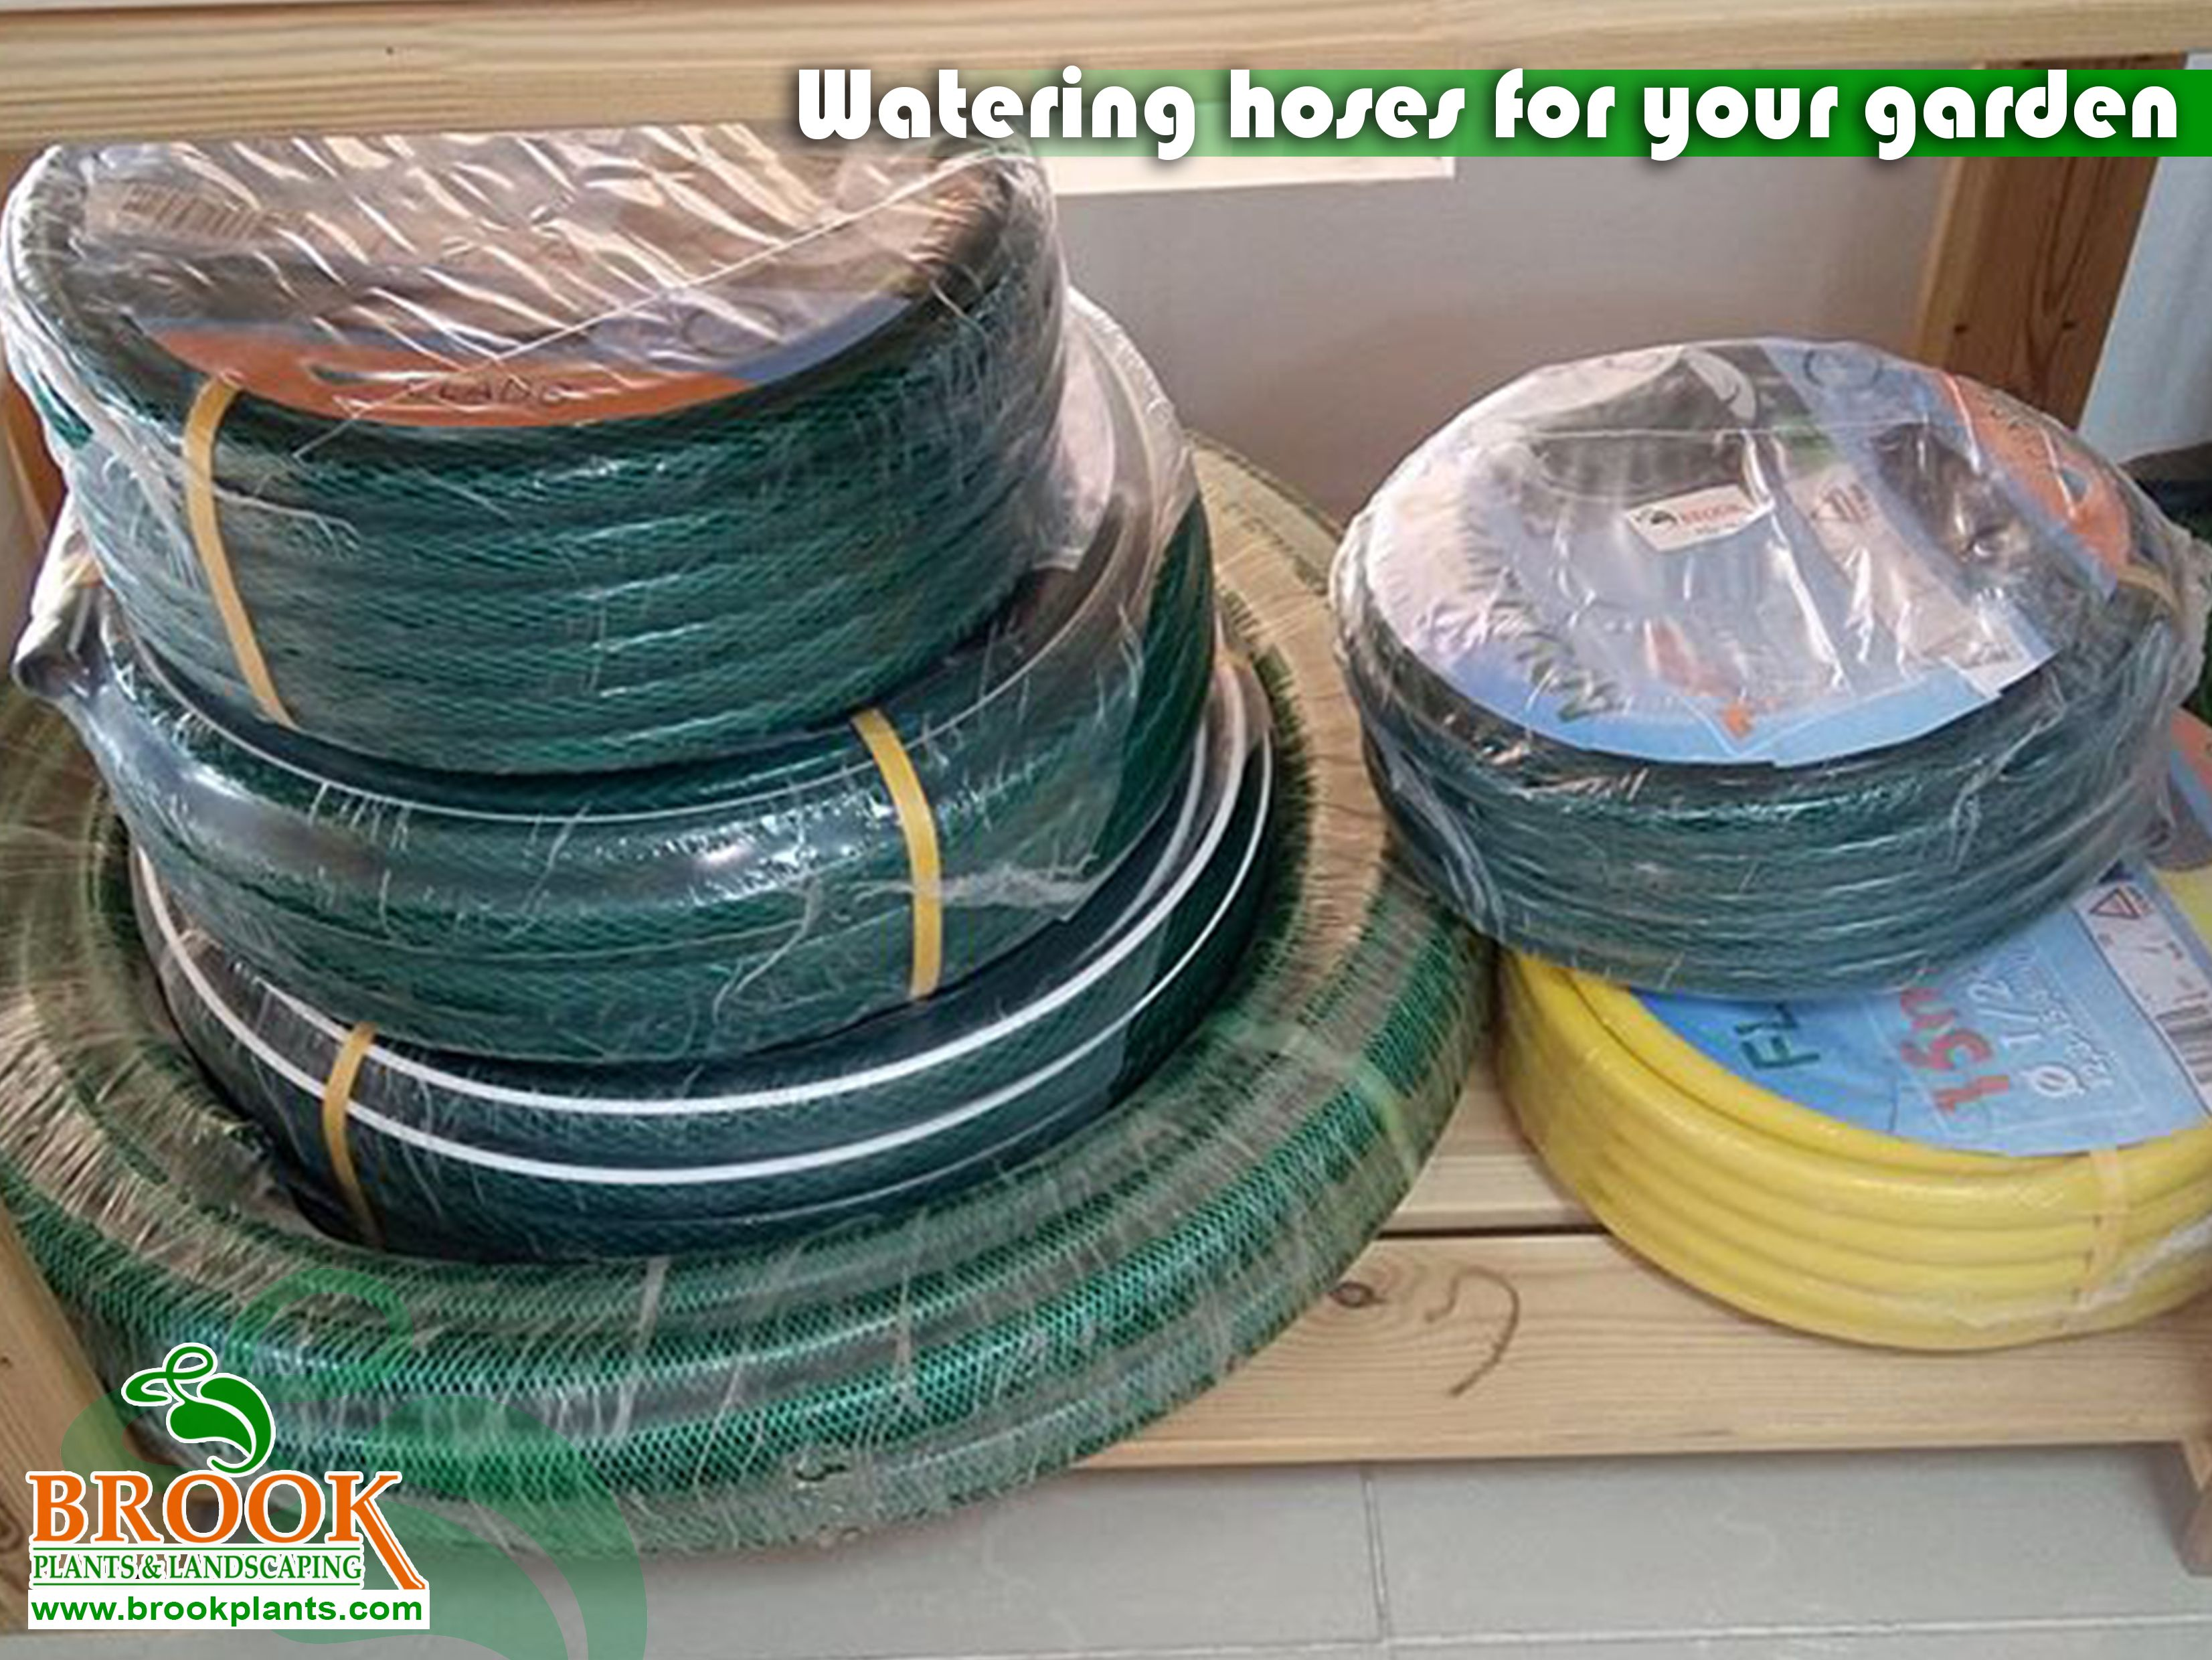 Watering hoses for your garden.  Call us at +971 4 882 9900.